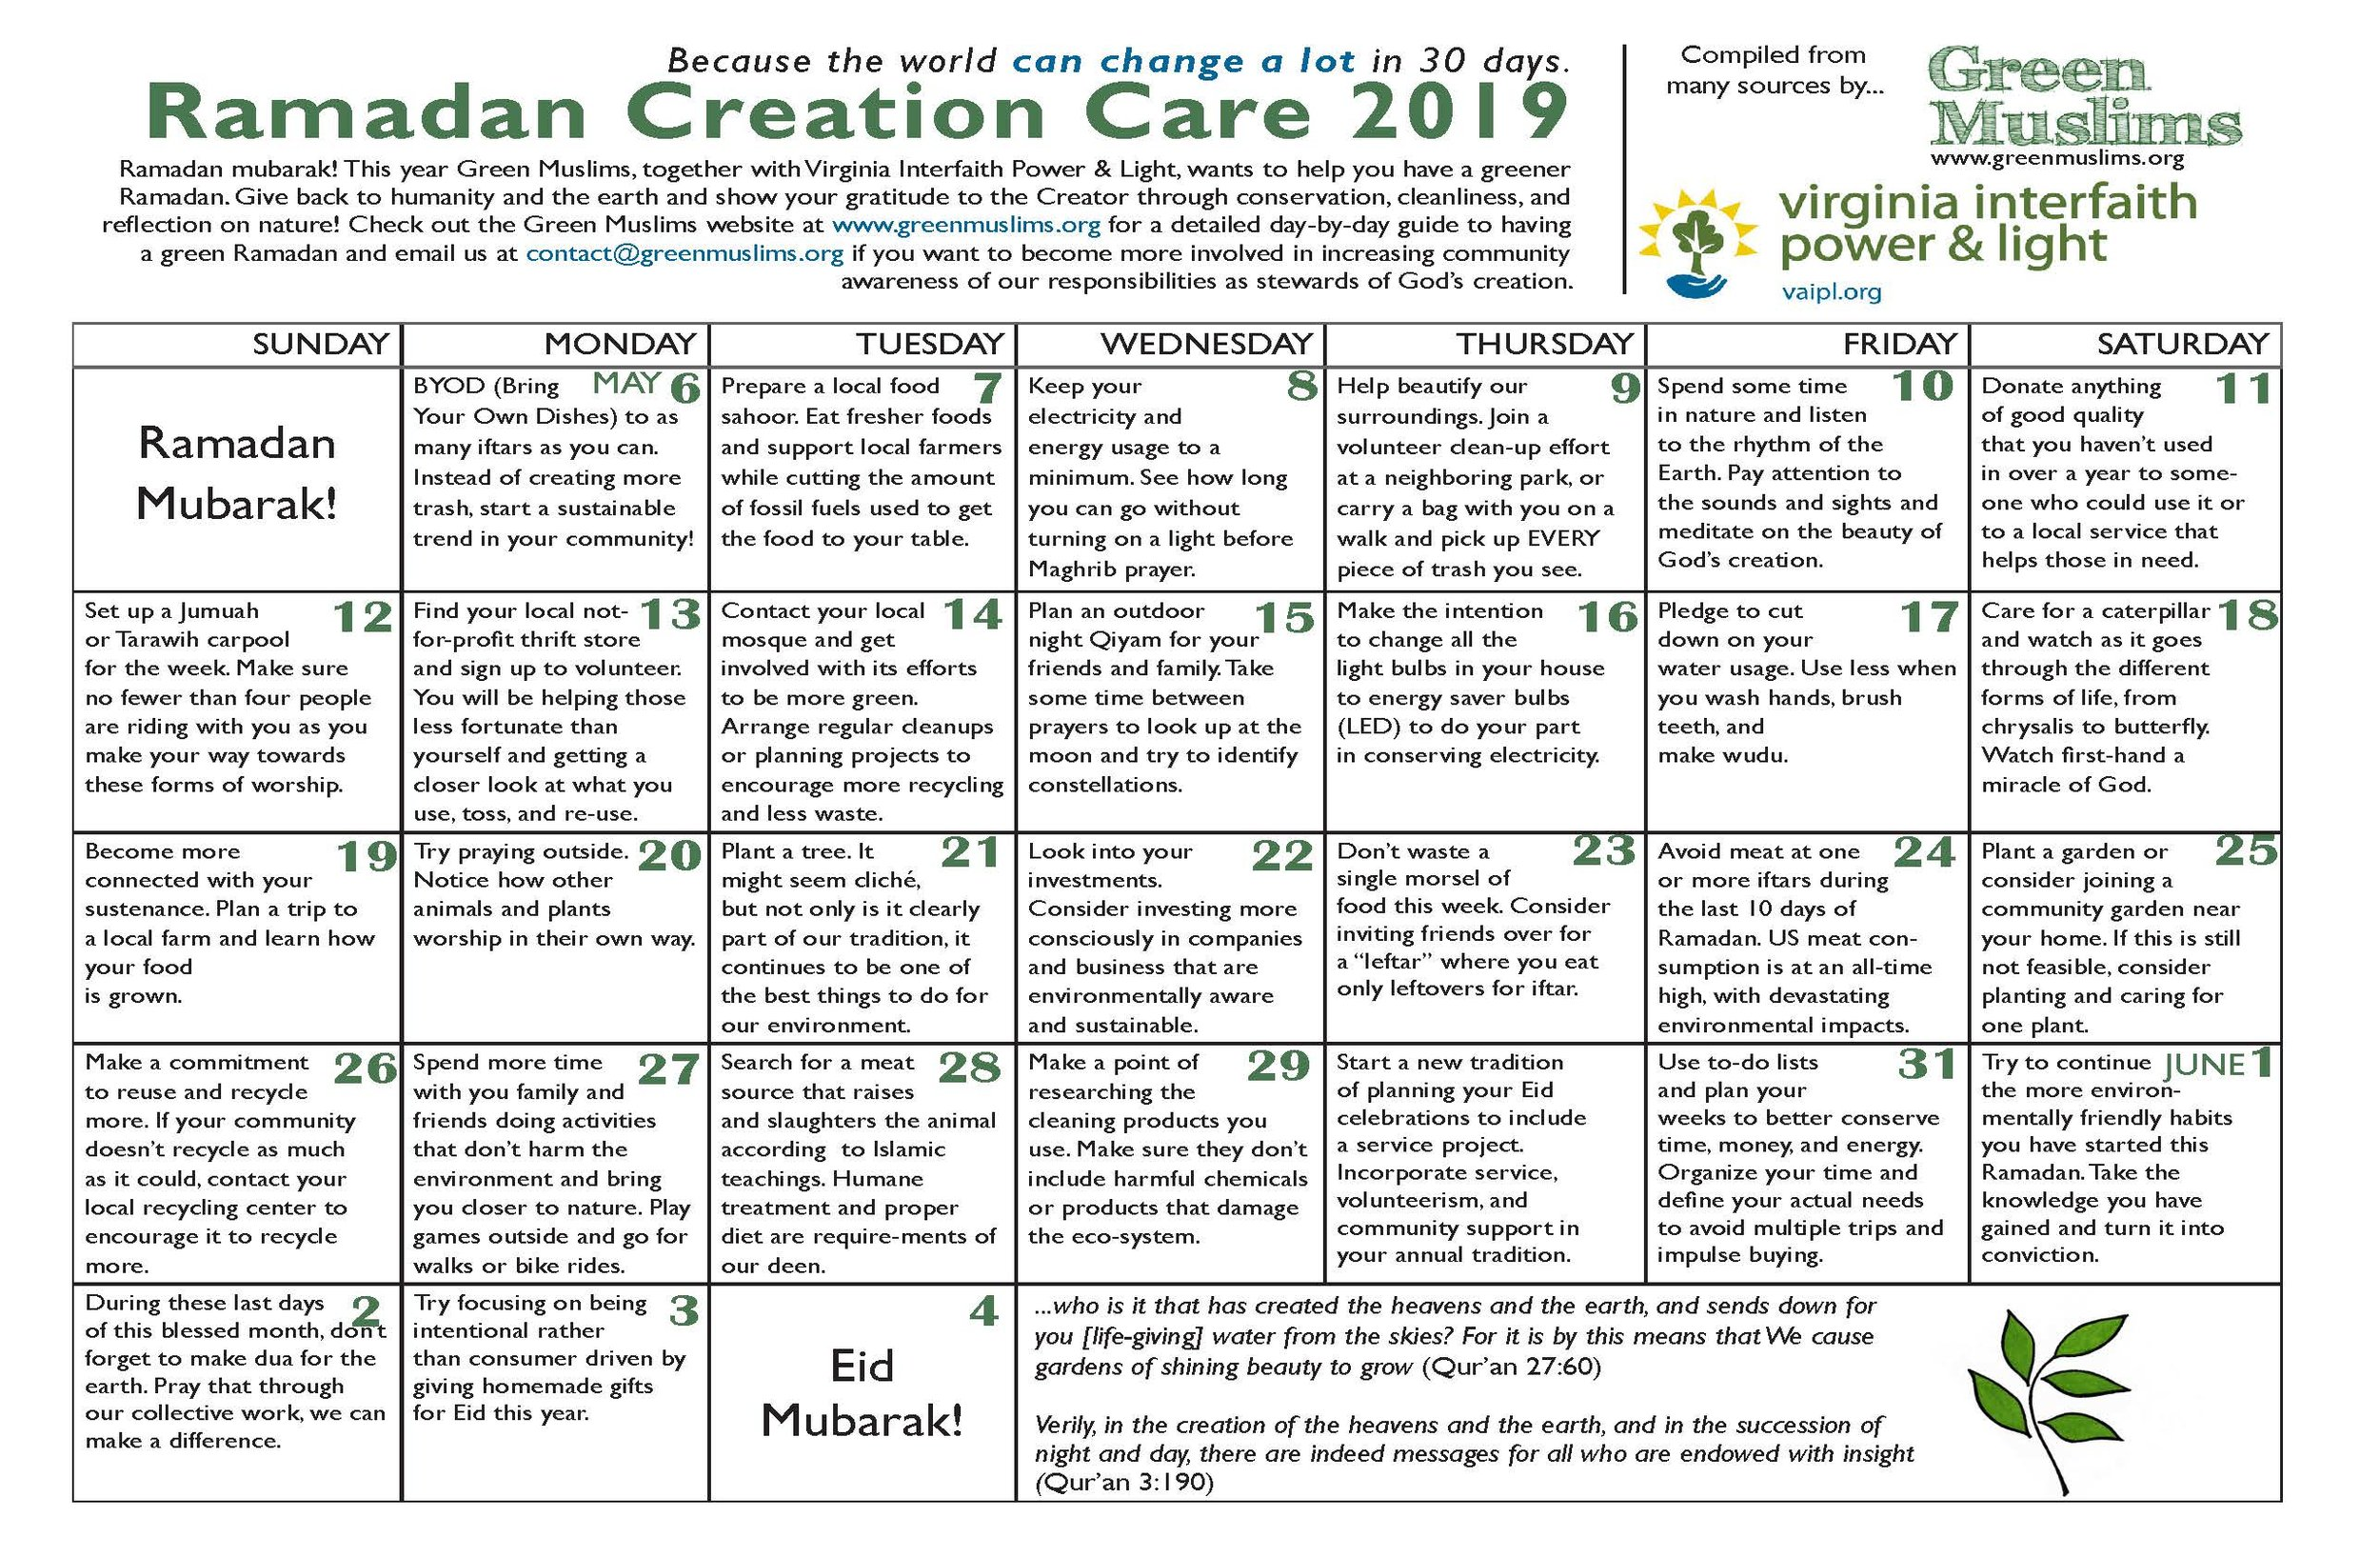 Ramadan Mubarak! - Green Muslims is proud to present our 2019 Ramadan Resources - including our Calendar, Toolkit and more!